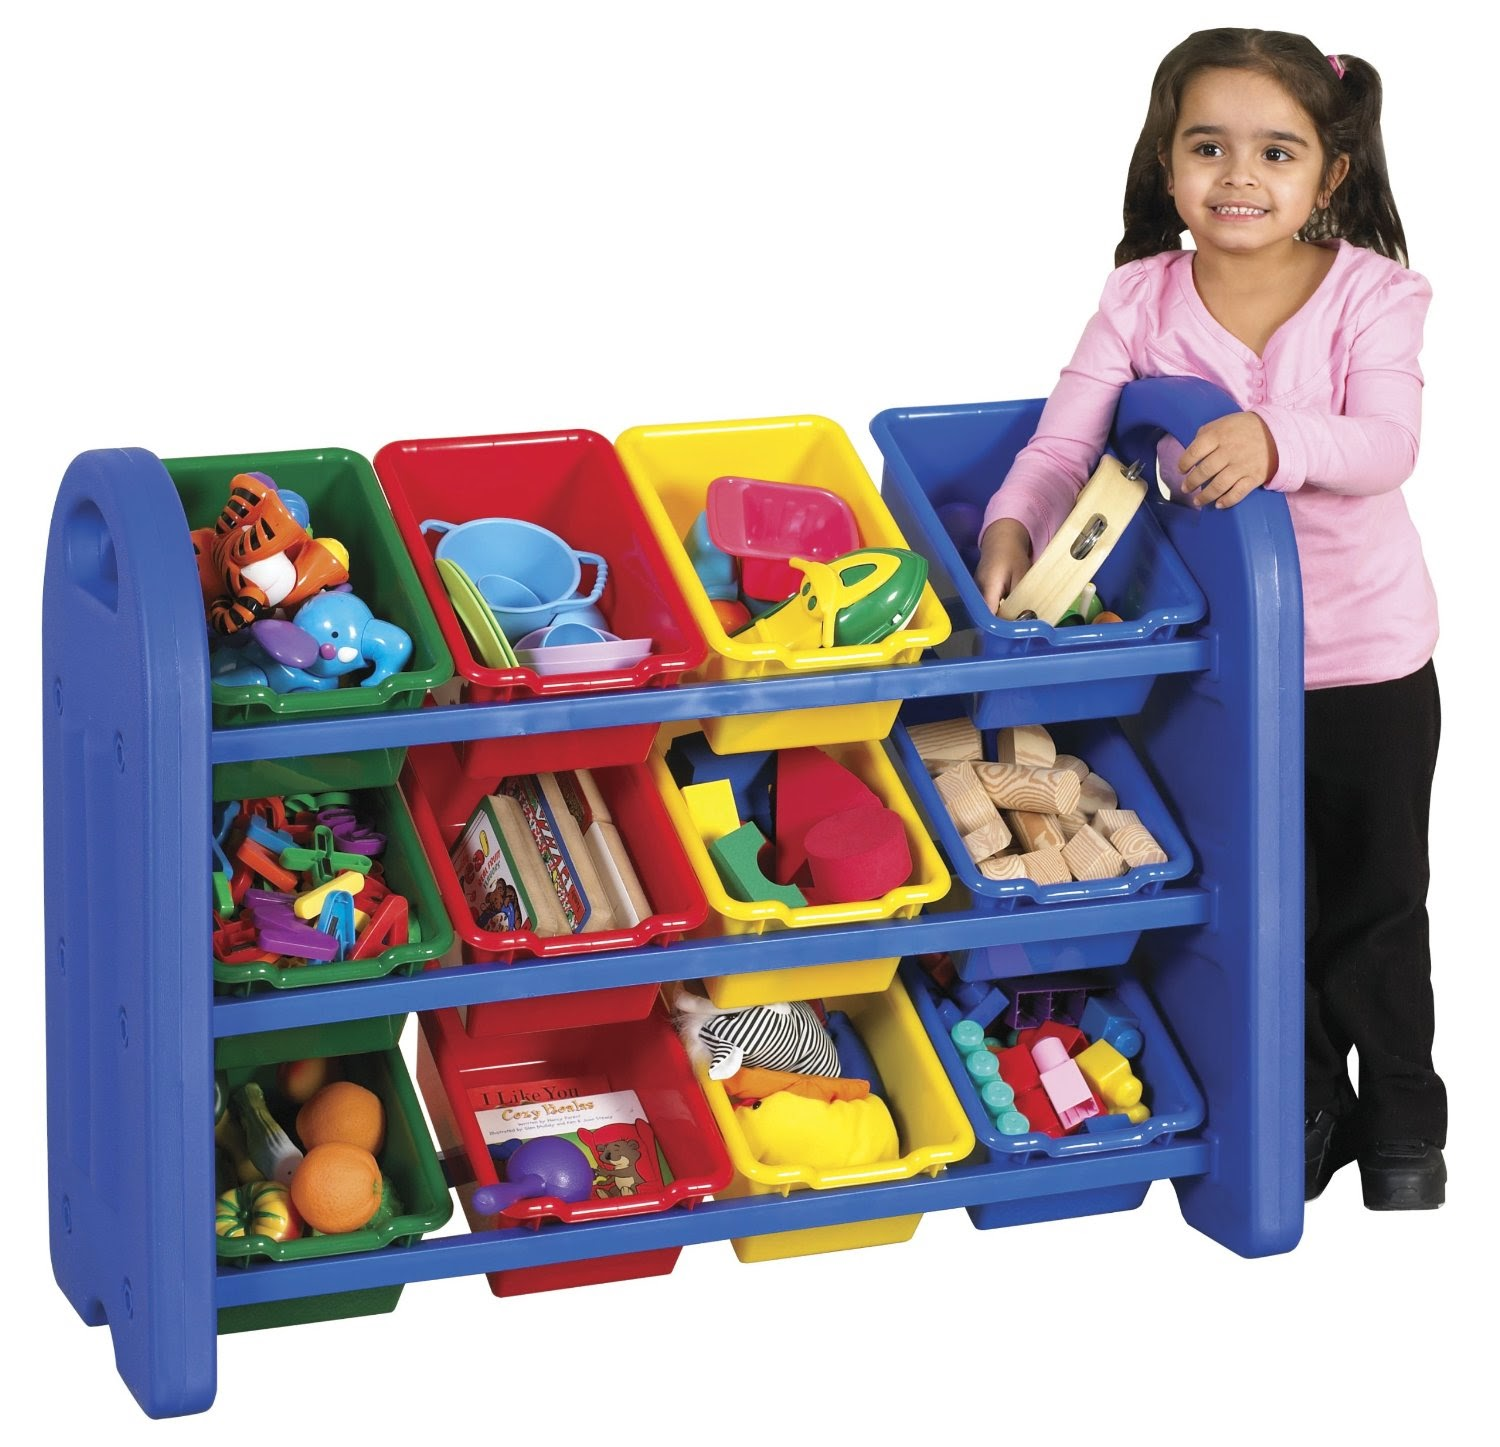 https://www.amazon.com/ECR4Kids-3-Tier-Storage-Organizer-Bins/dp/B000HY97N0/ref=as_li_ss_til?tag=soutsubusavi-20&linkCode=w01&linkId=2HARUT6RNFFKZ3RA&creativeASIN=B000HY97N0